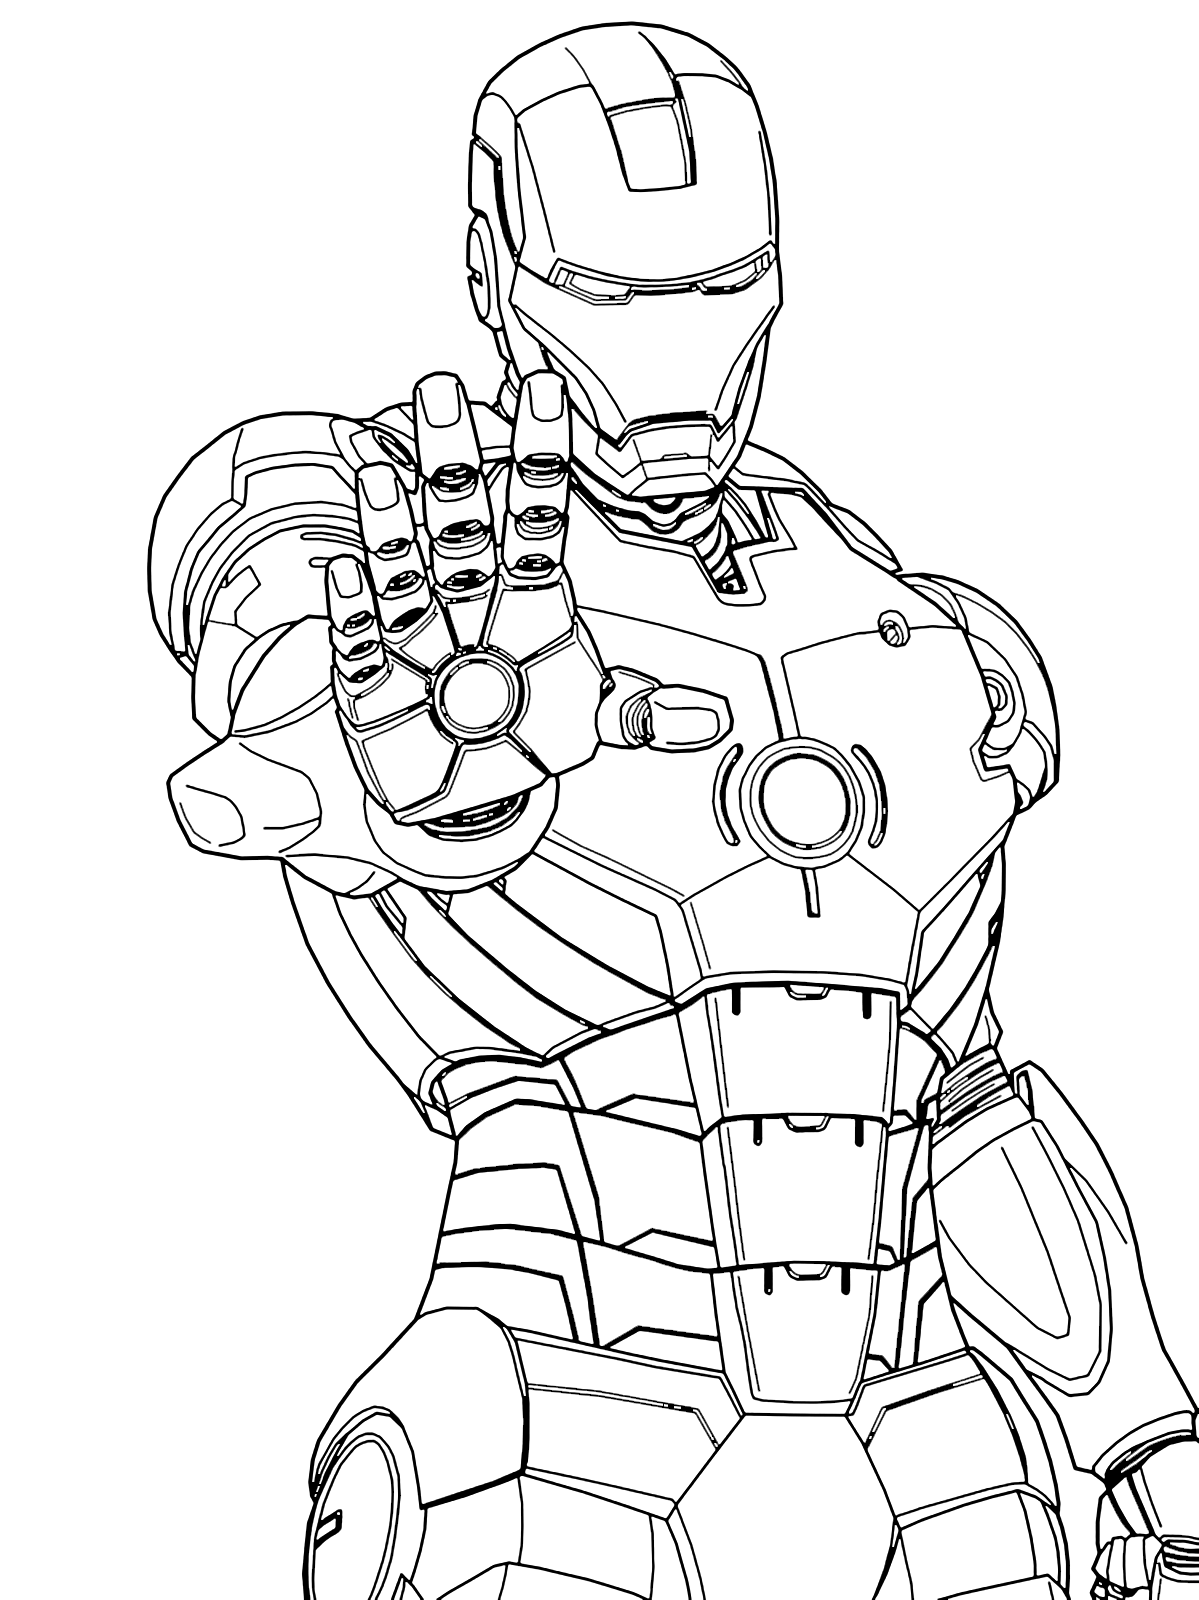 ironman colouring iron man coloring pages printable coloring pages ironman colouring